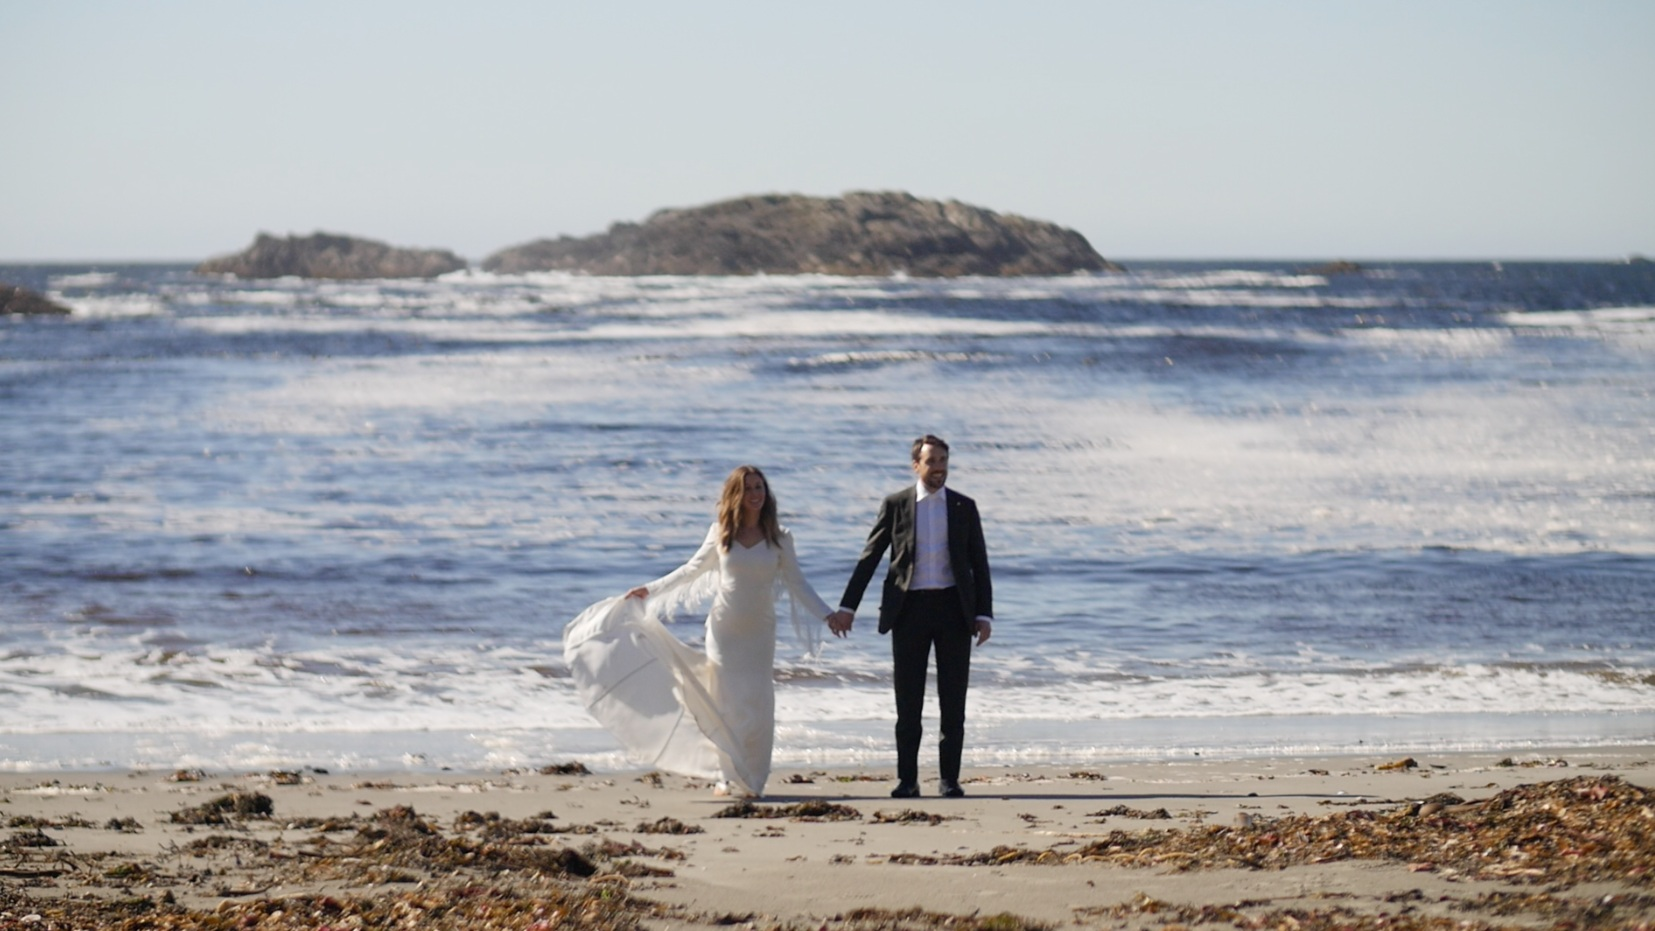 wya-point-elopement-on-the-beach - wedding video Evergreen & Bound Films